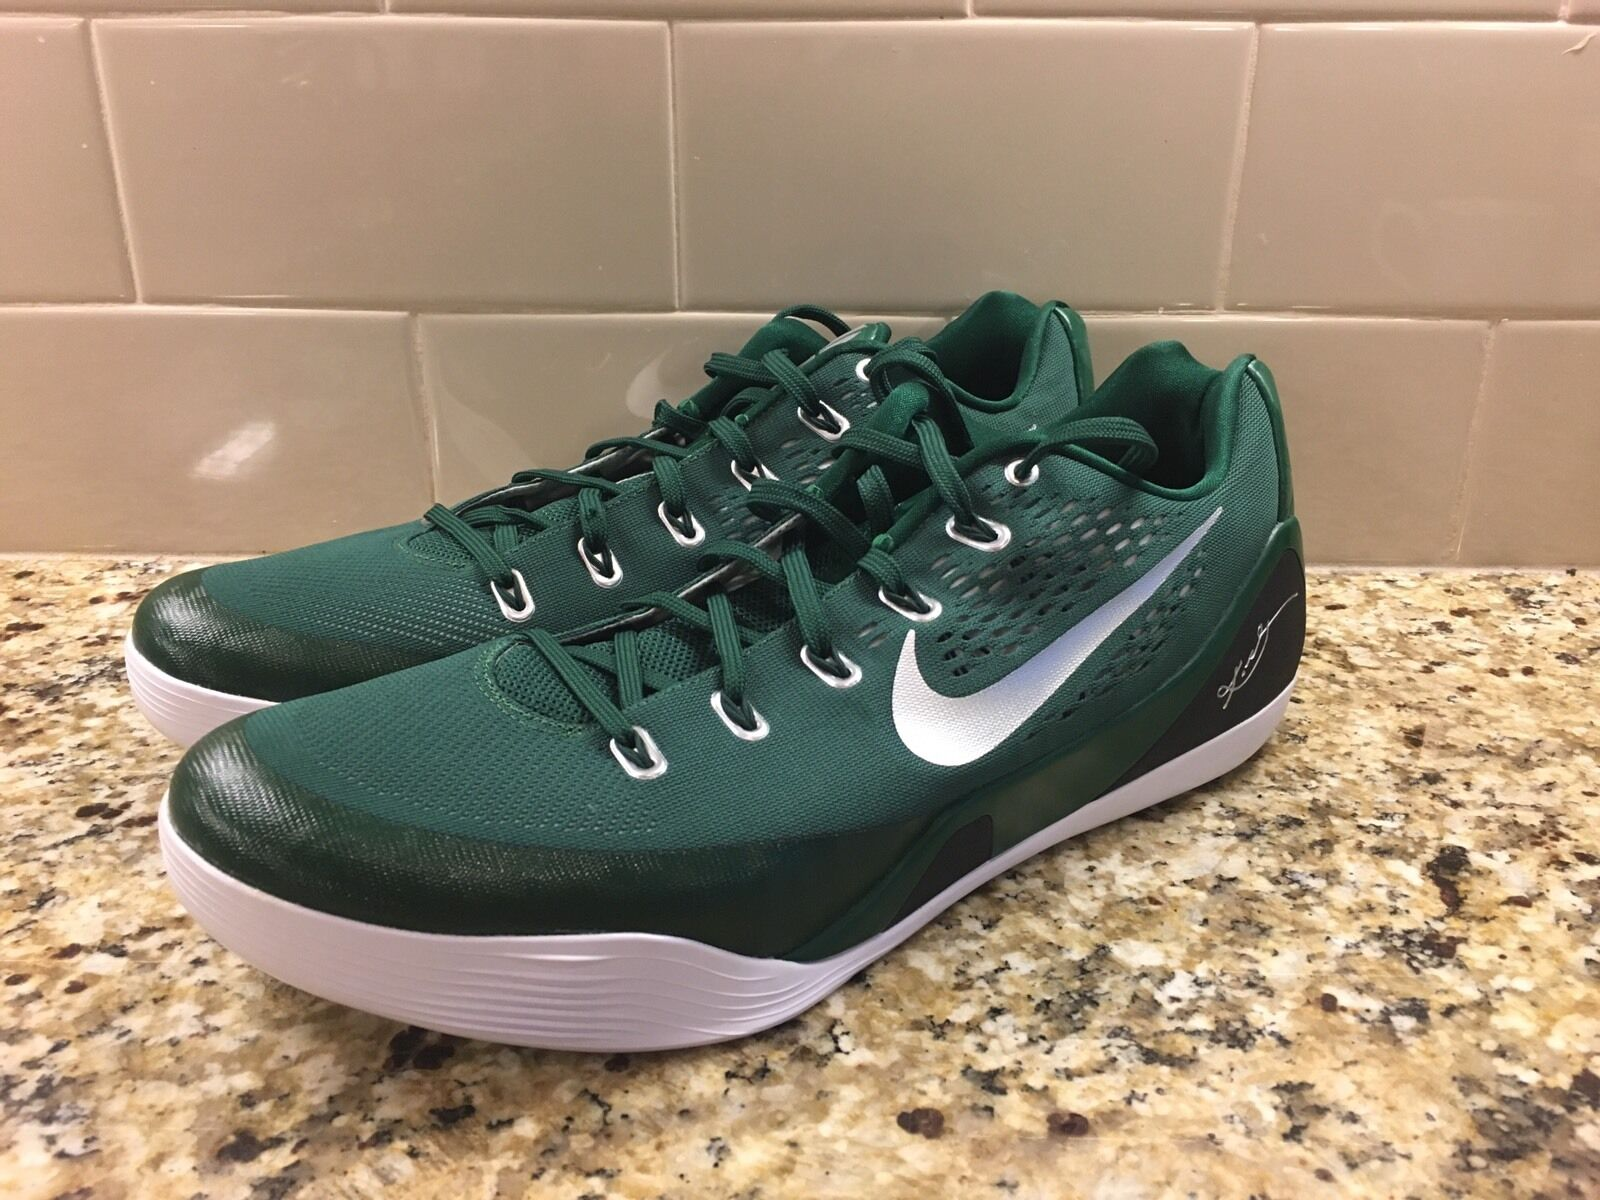 Uomo  160 NIKE KOBE IX 9 EM TB Basketball Shoes 685776 301 GREEN WHITE sz 16.5